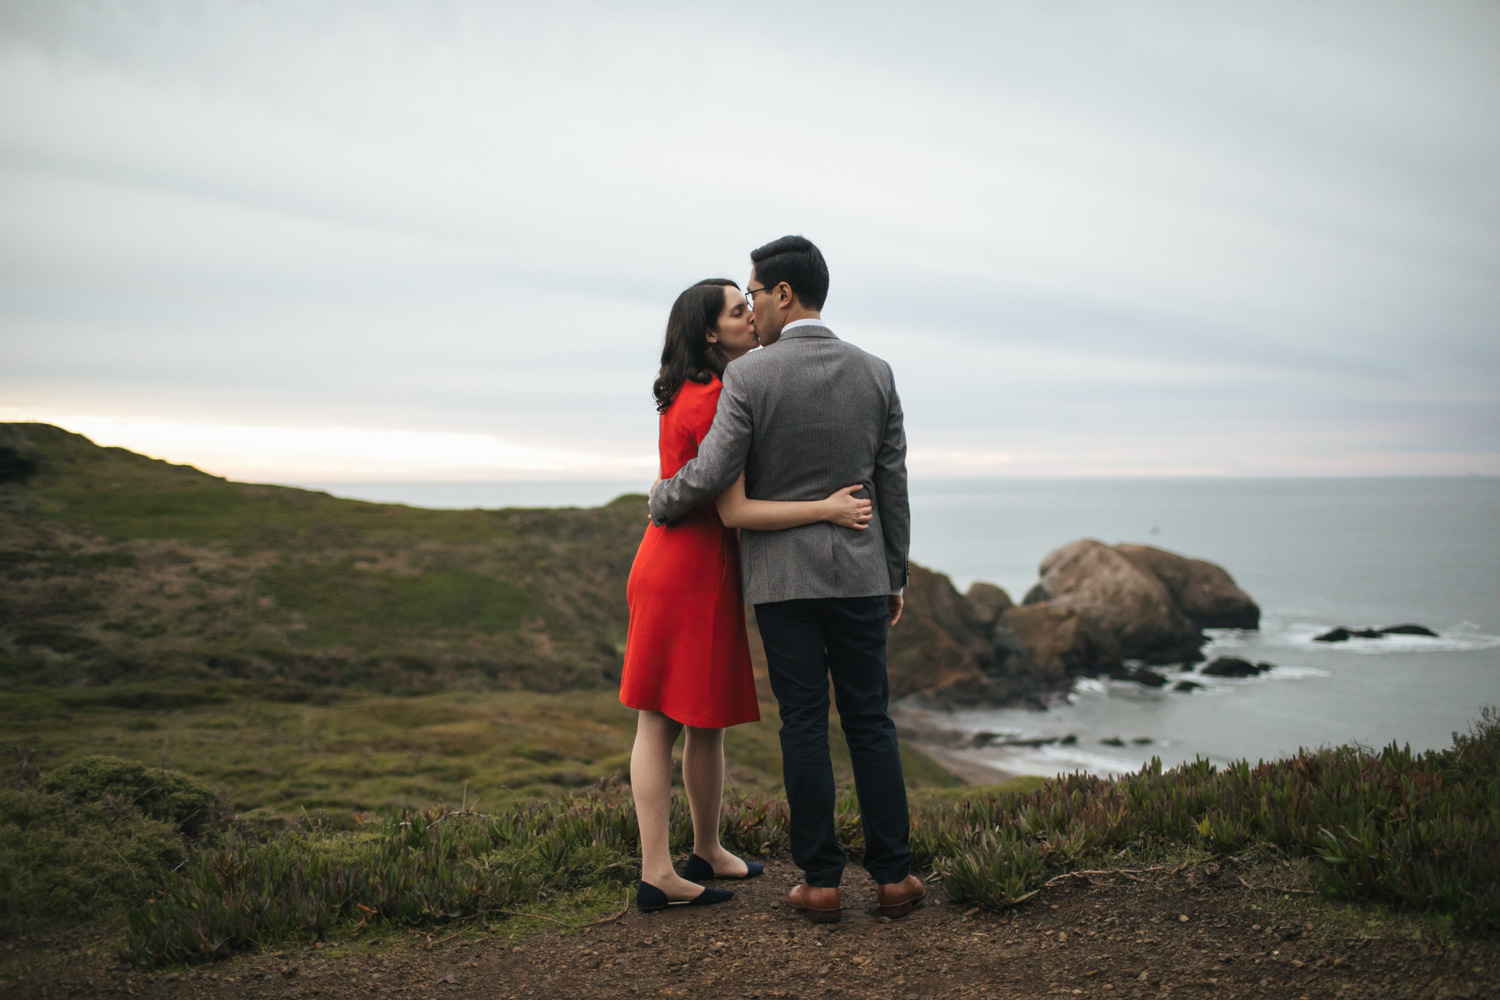 marin-headlands-wedding-photographer-3.jpg